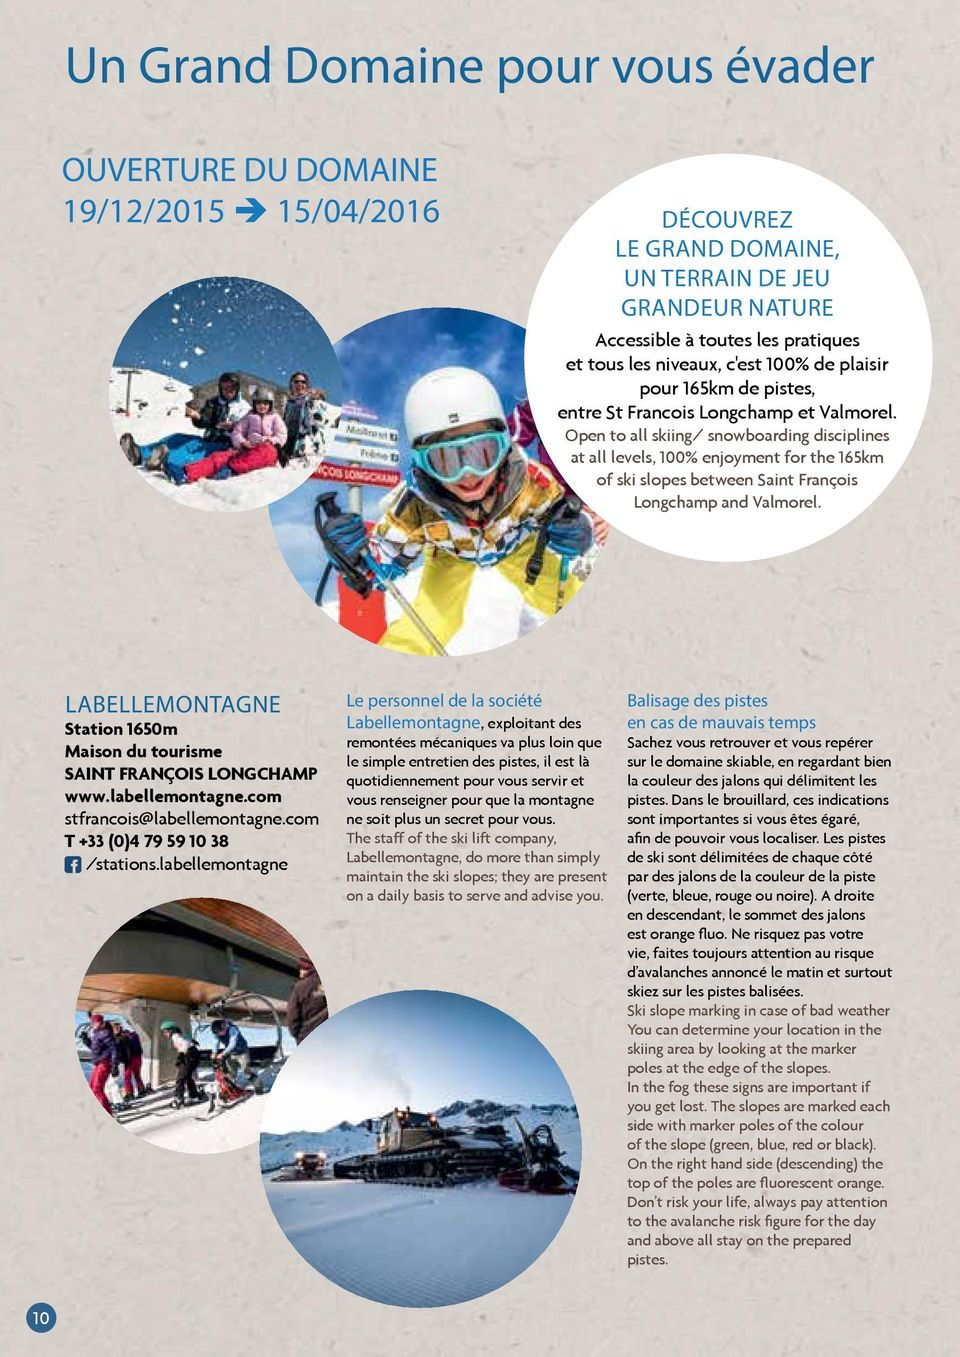 Open to all skiing/ snowboarding disciplines at all levels, 100% enjoyment for the 165km of ski slopes between Saint François Longchamp and Valmorel.